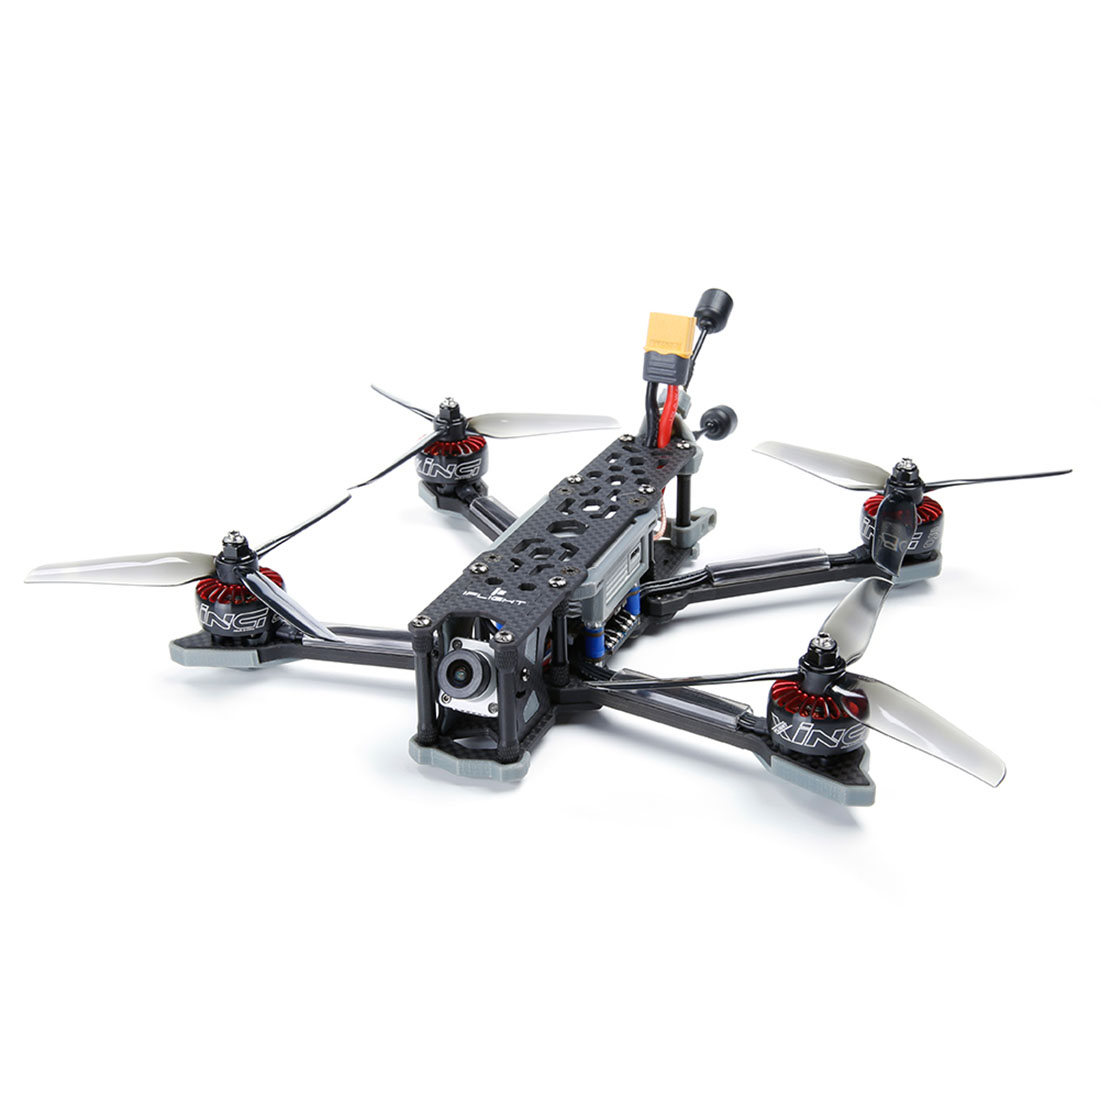 Image 2 - iFlight TITAN DC5 5inch 222mm 4s/6s HD FPV Racing Drone BNF SucceX D F7 50A Stack XING E 2207 2450/1800KV Motor Helicopter ToyParts & Accessories   -